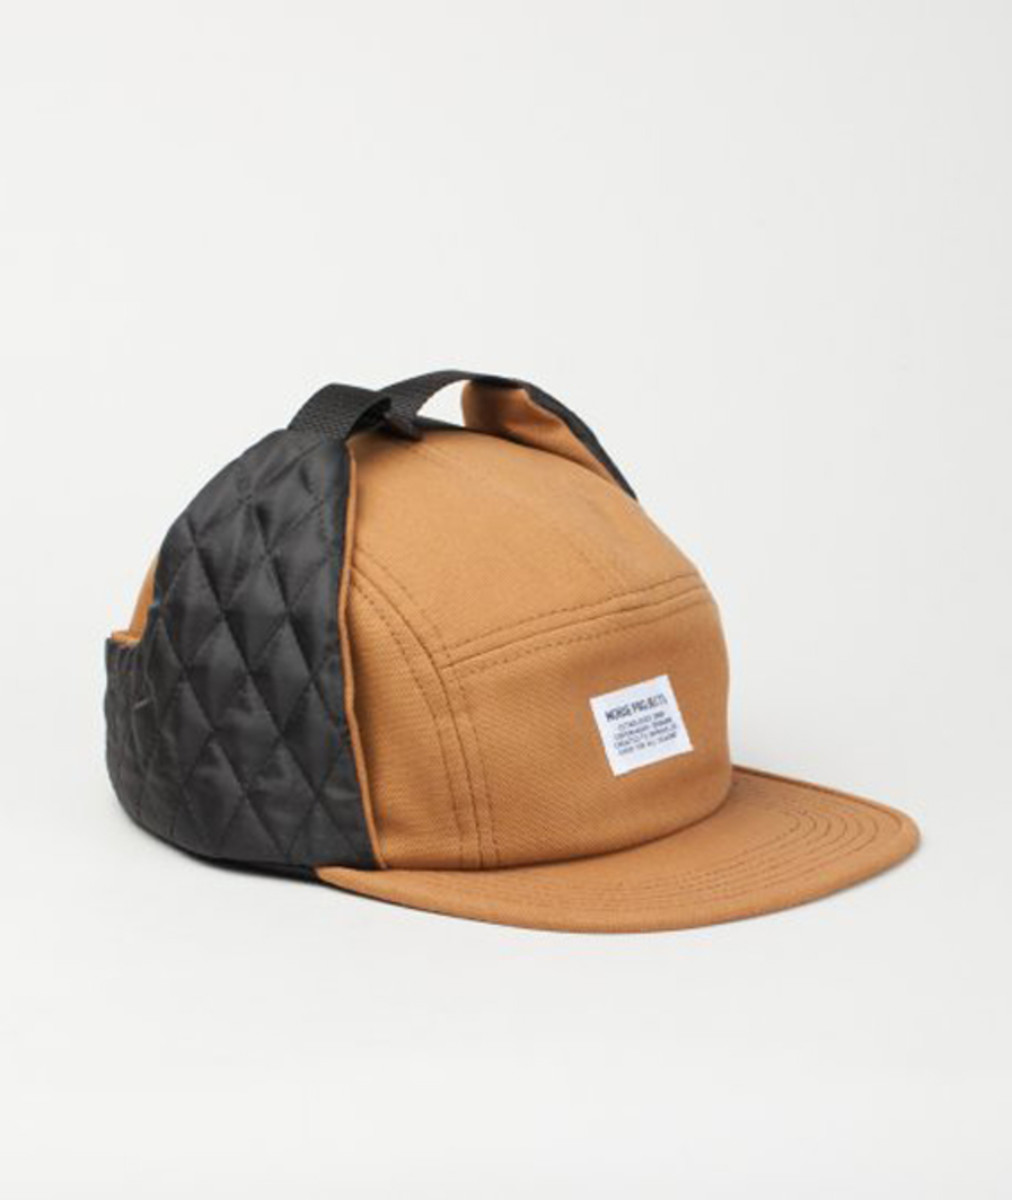 norse-projects-earflap-duck-canvas-cap-04